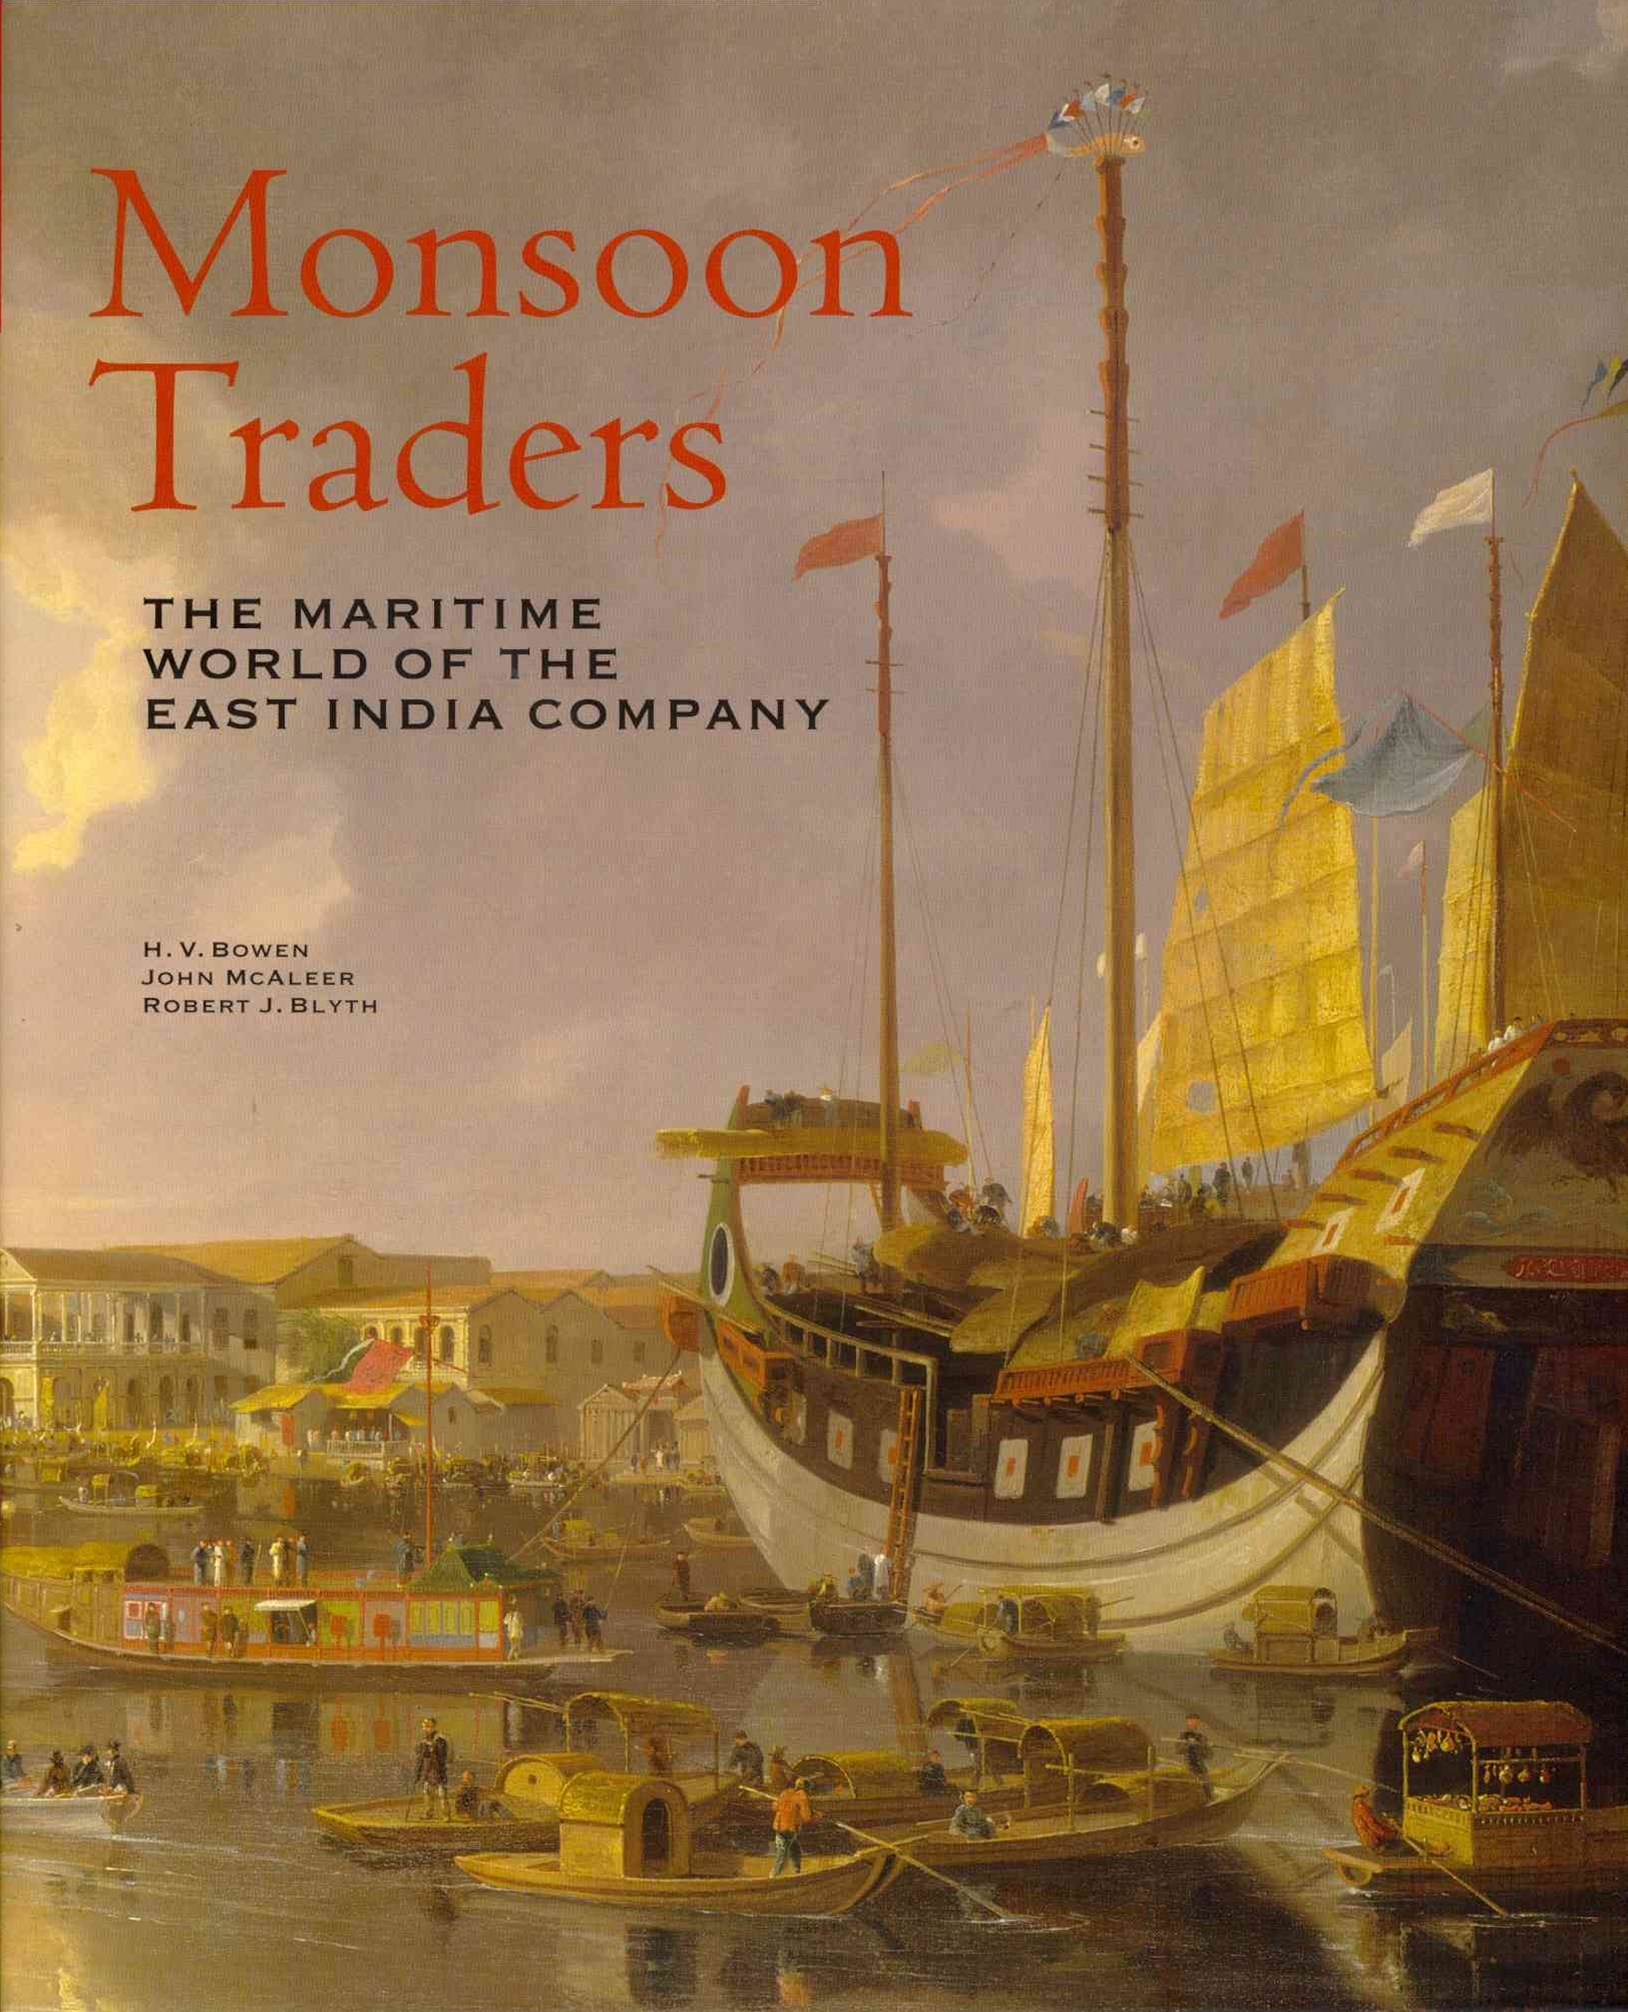 Monsoon Traders